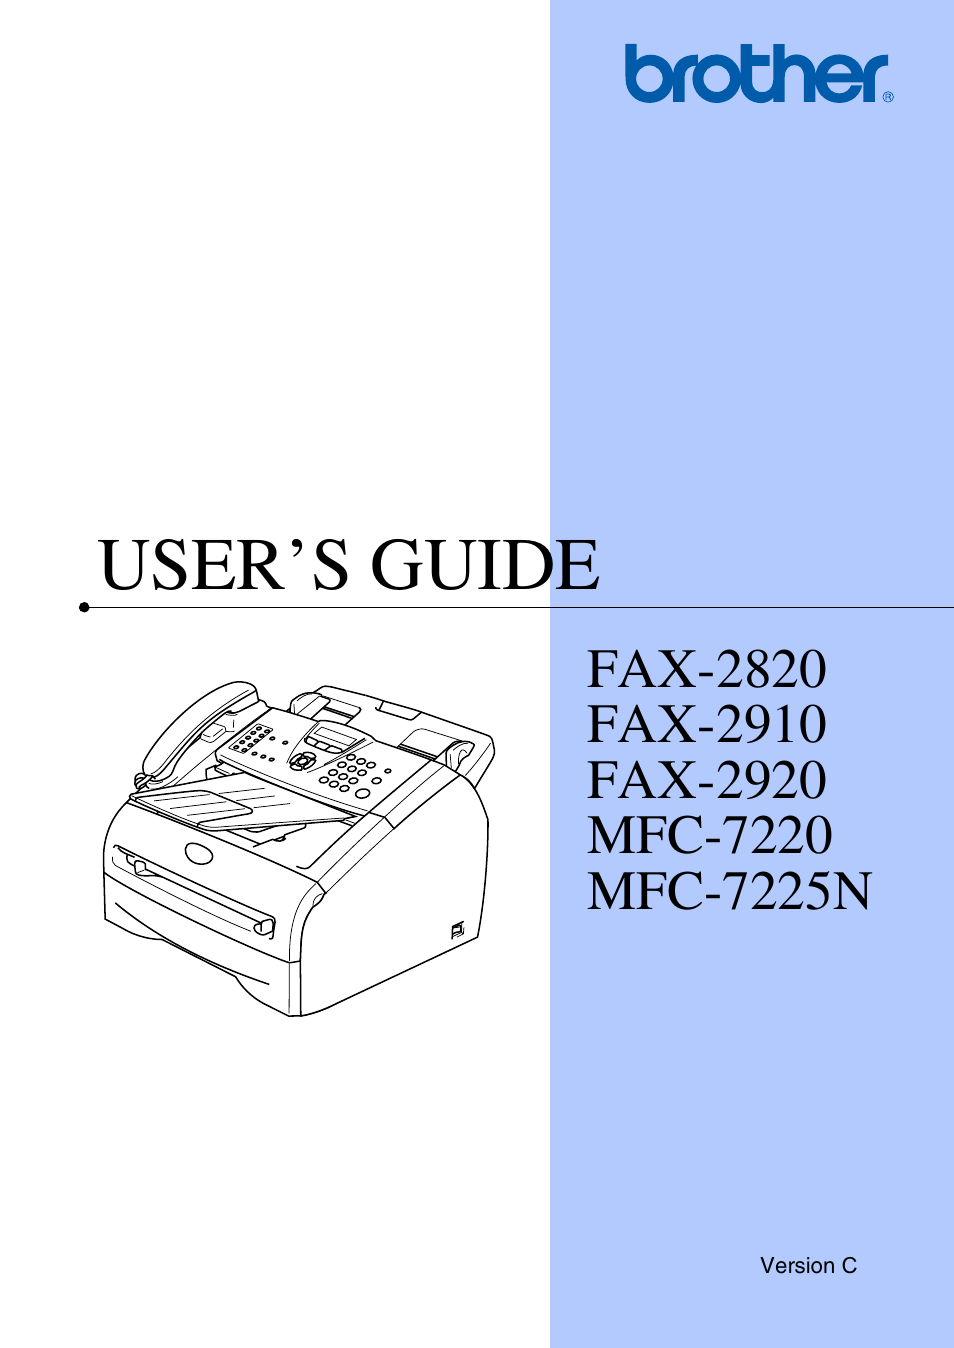 Brother IntelliFax-2820 User Manual | 159 pages | Also for: MFC-7220,  MFC-7225N, IntelliFax-2920, IntelliFax-2910